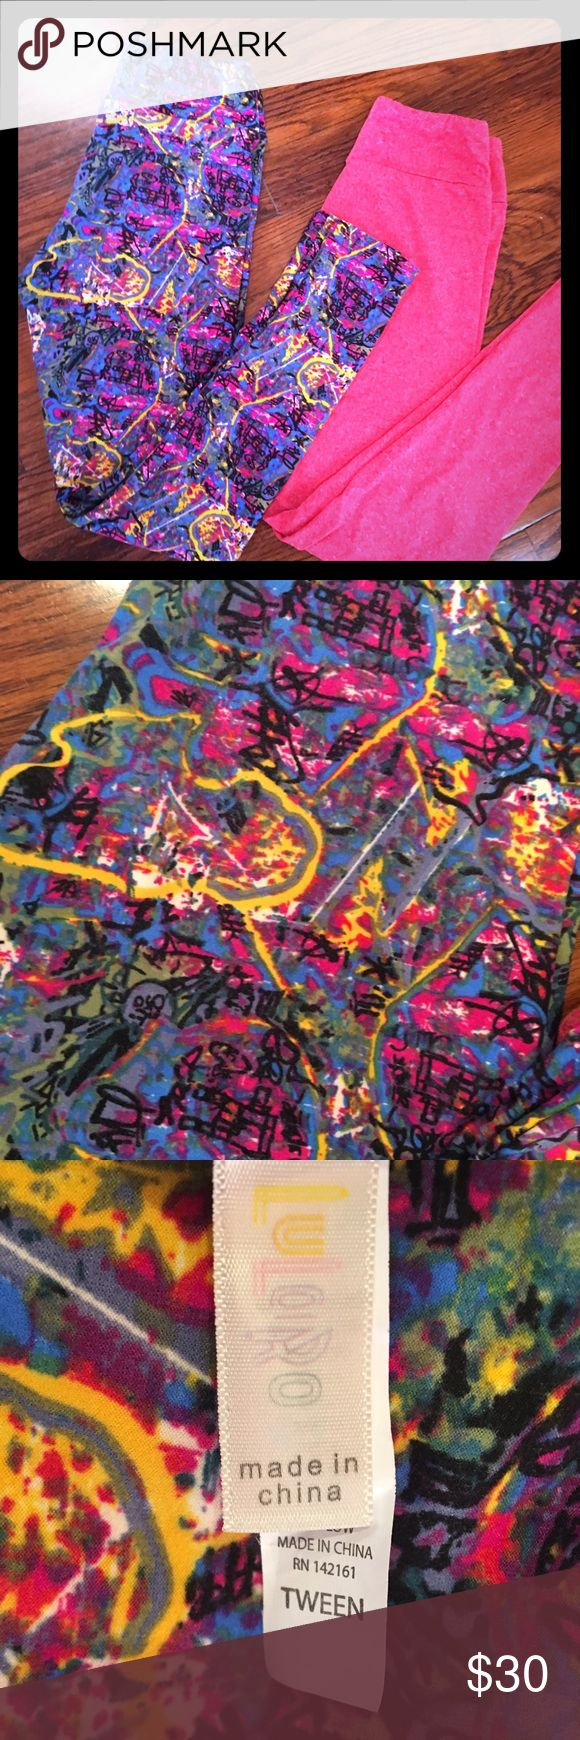 ✨JUST IN✨LulaRoe Tween Set I have worn these two cute LulaRoe maybe twice each. No signs of use. Washed twice. Selling the pair together, but open to offers if buying separately. LuLaRoe Pants Leggings